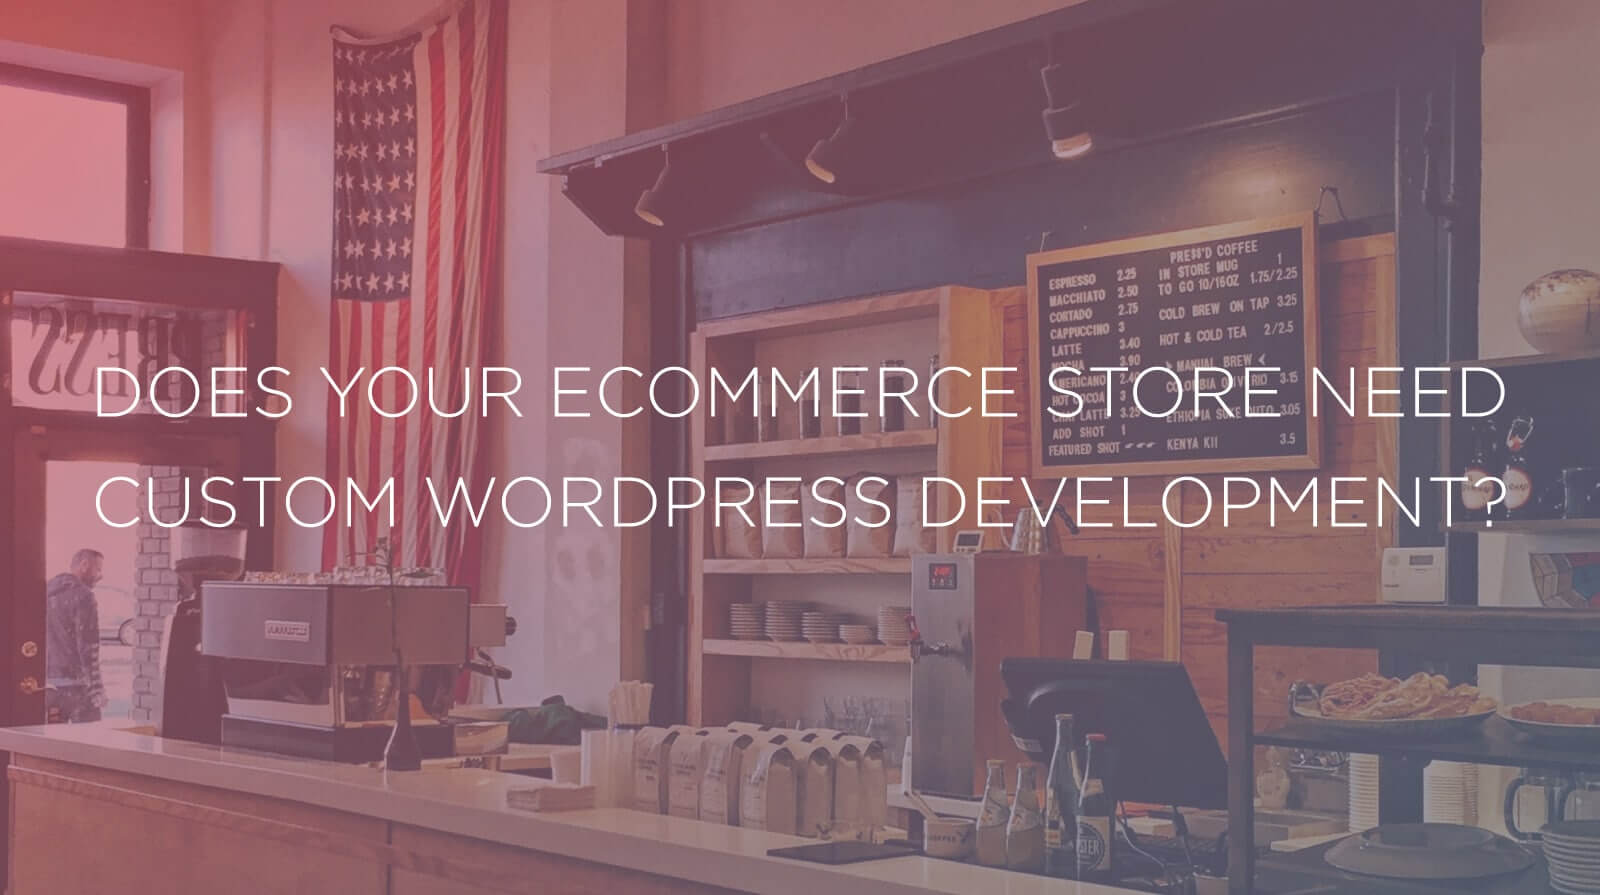 Does Your Ecommerce Store Need Custom WordPress Development